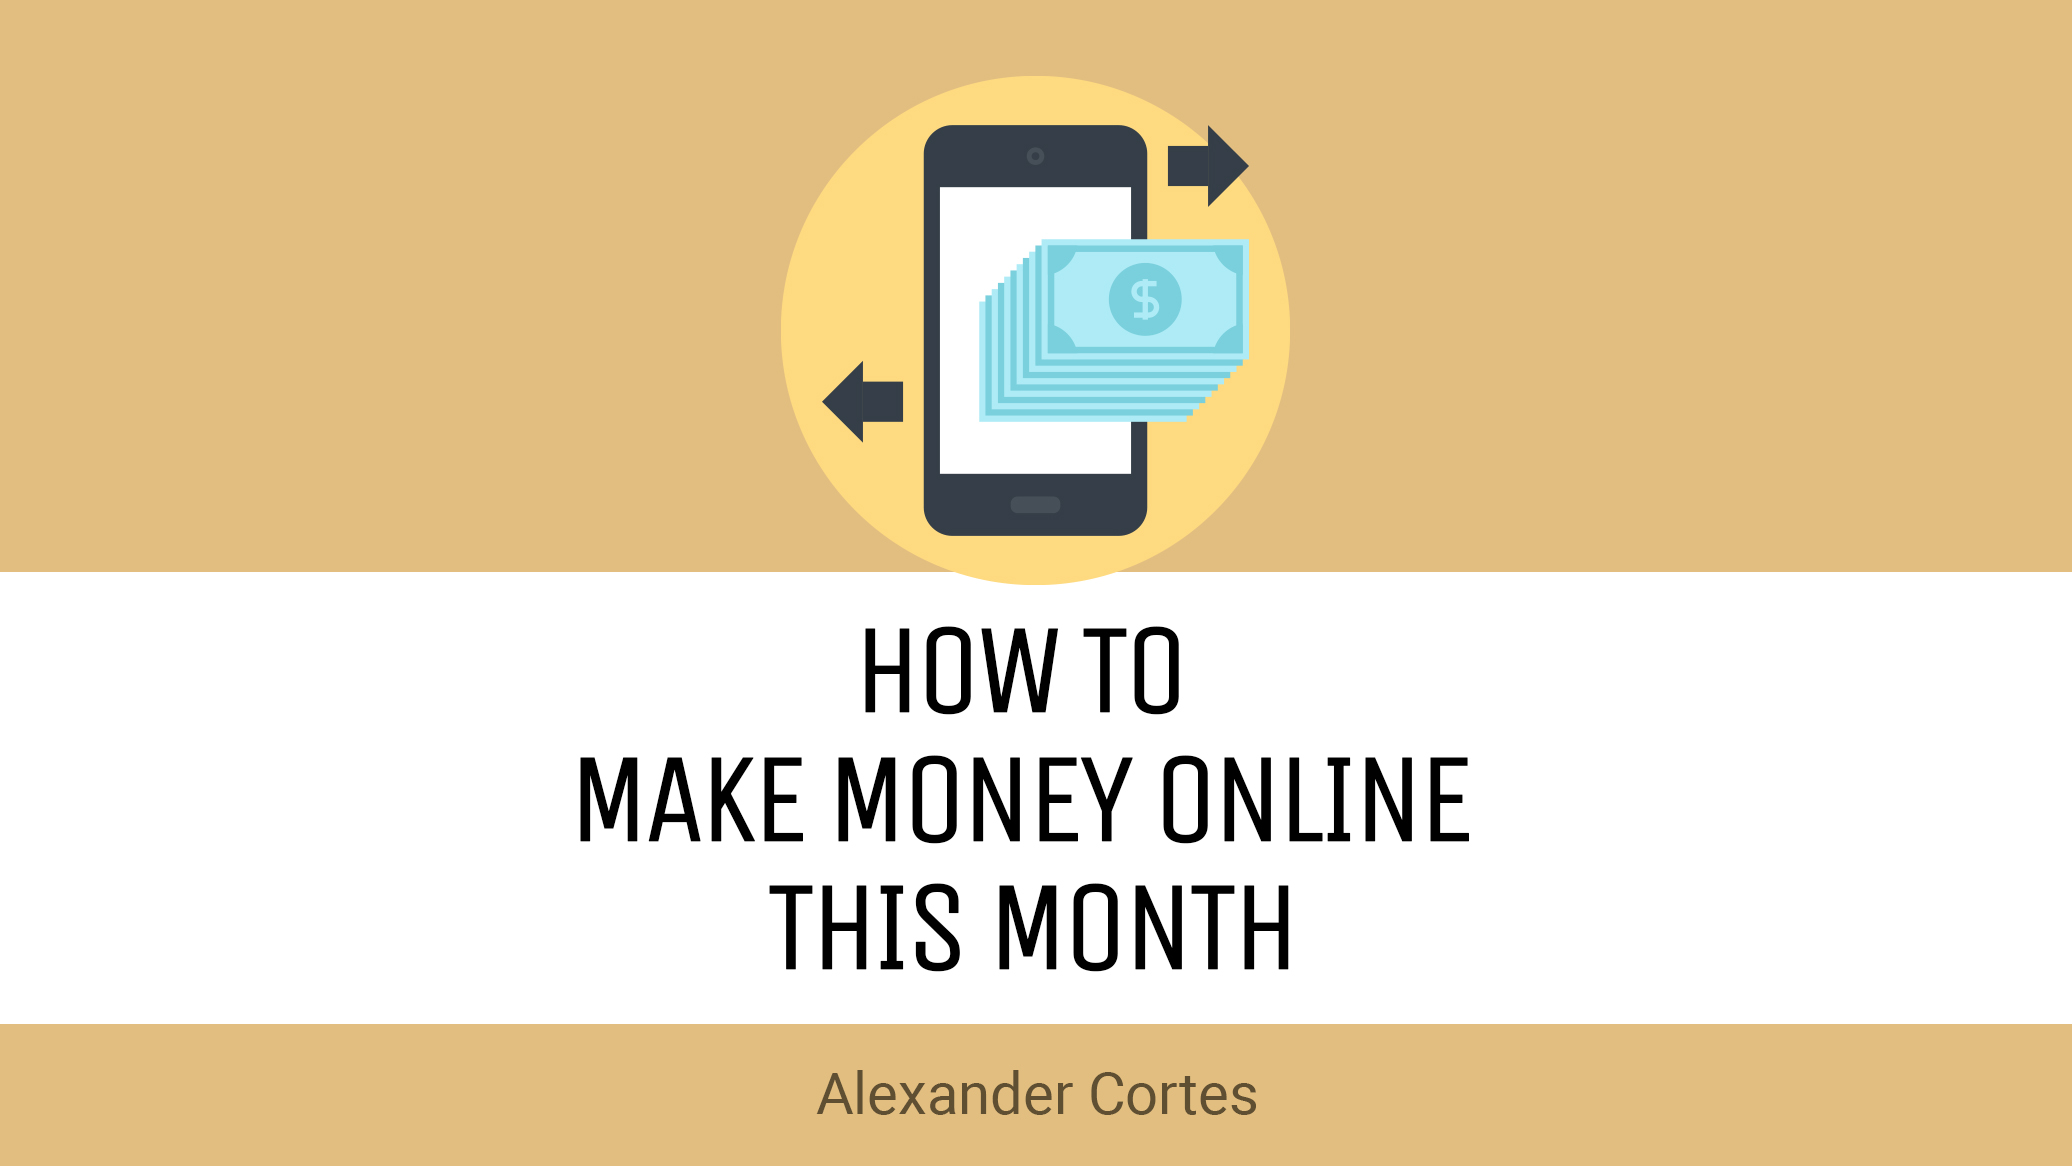 How to Make Money Online This Month